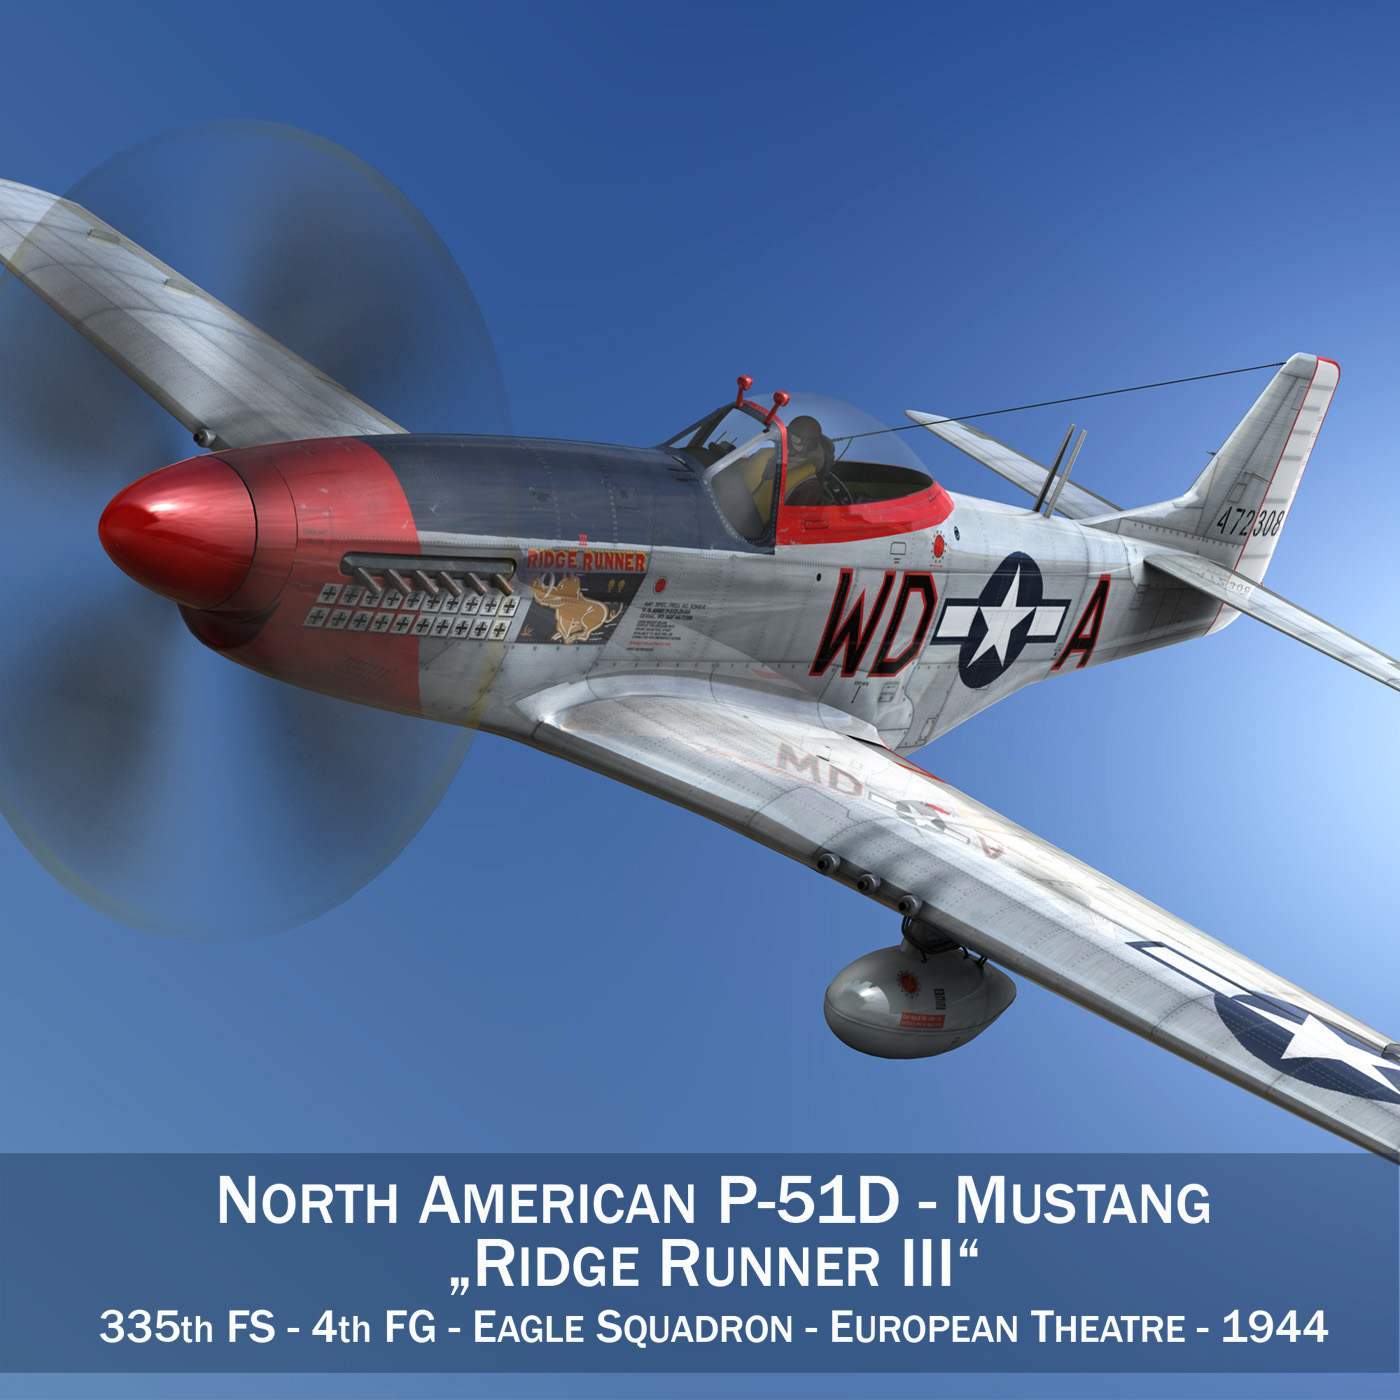 north american p-51d – ridge runner iii 3d model fbx c4d lwo obj 282363